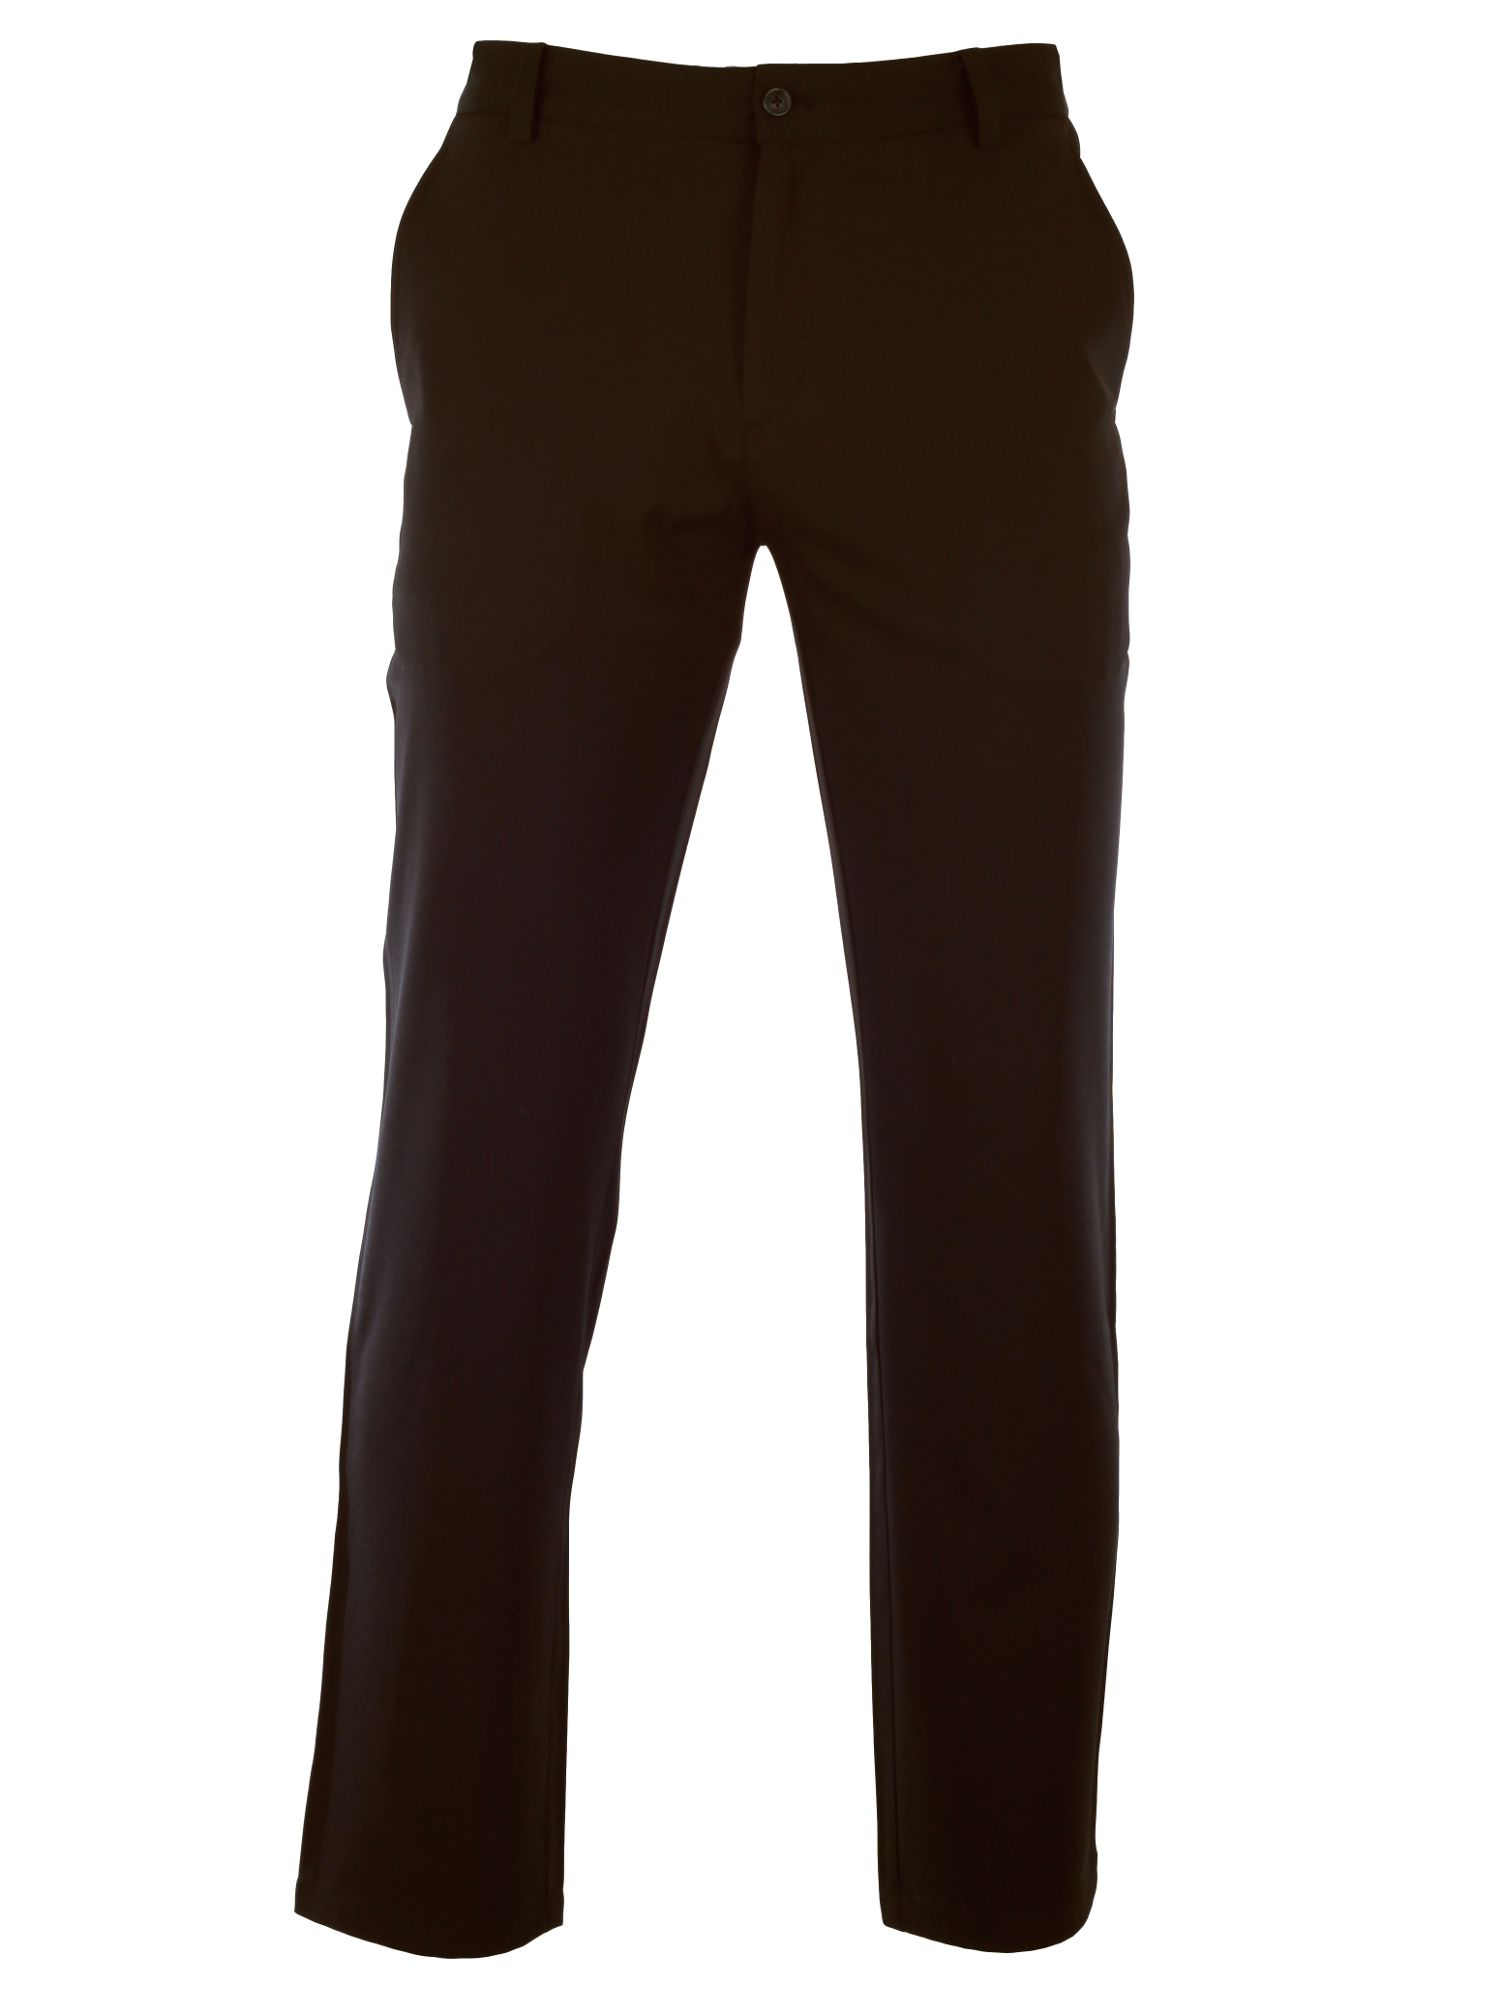 Lexington trouser